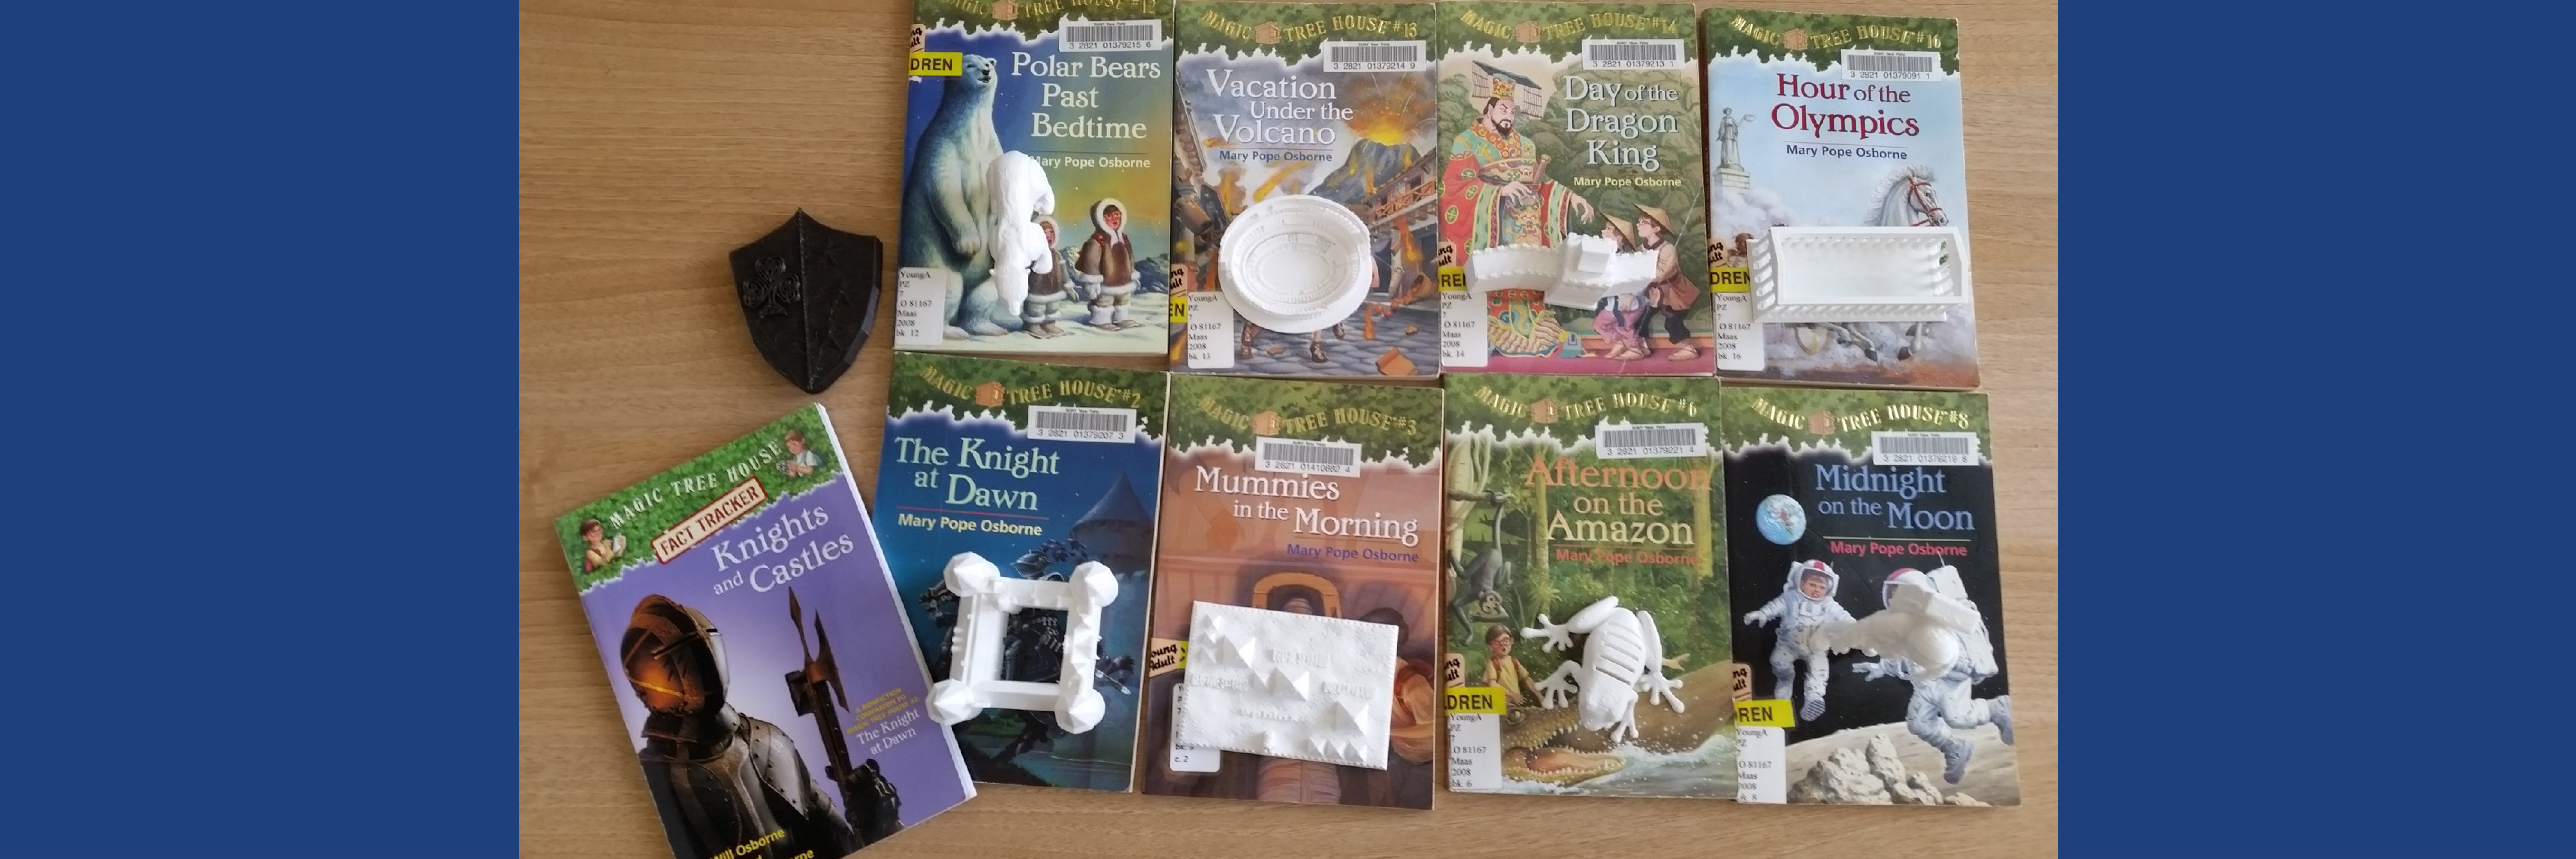 Magic Tree House books with 3D printed models of an object in the book